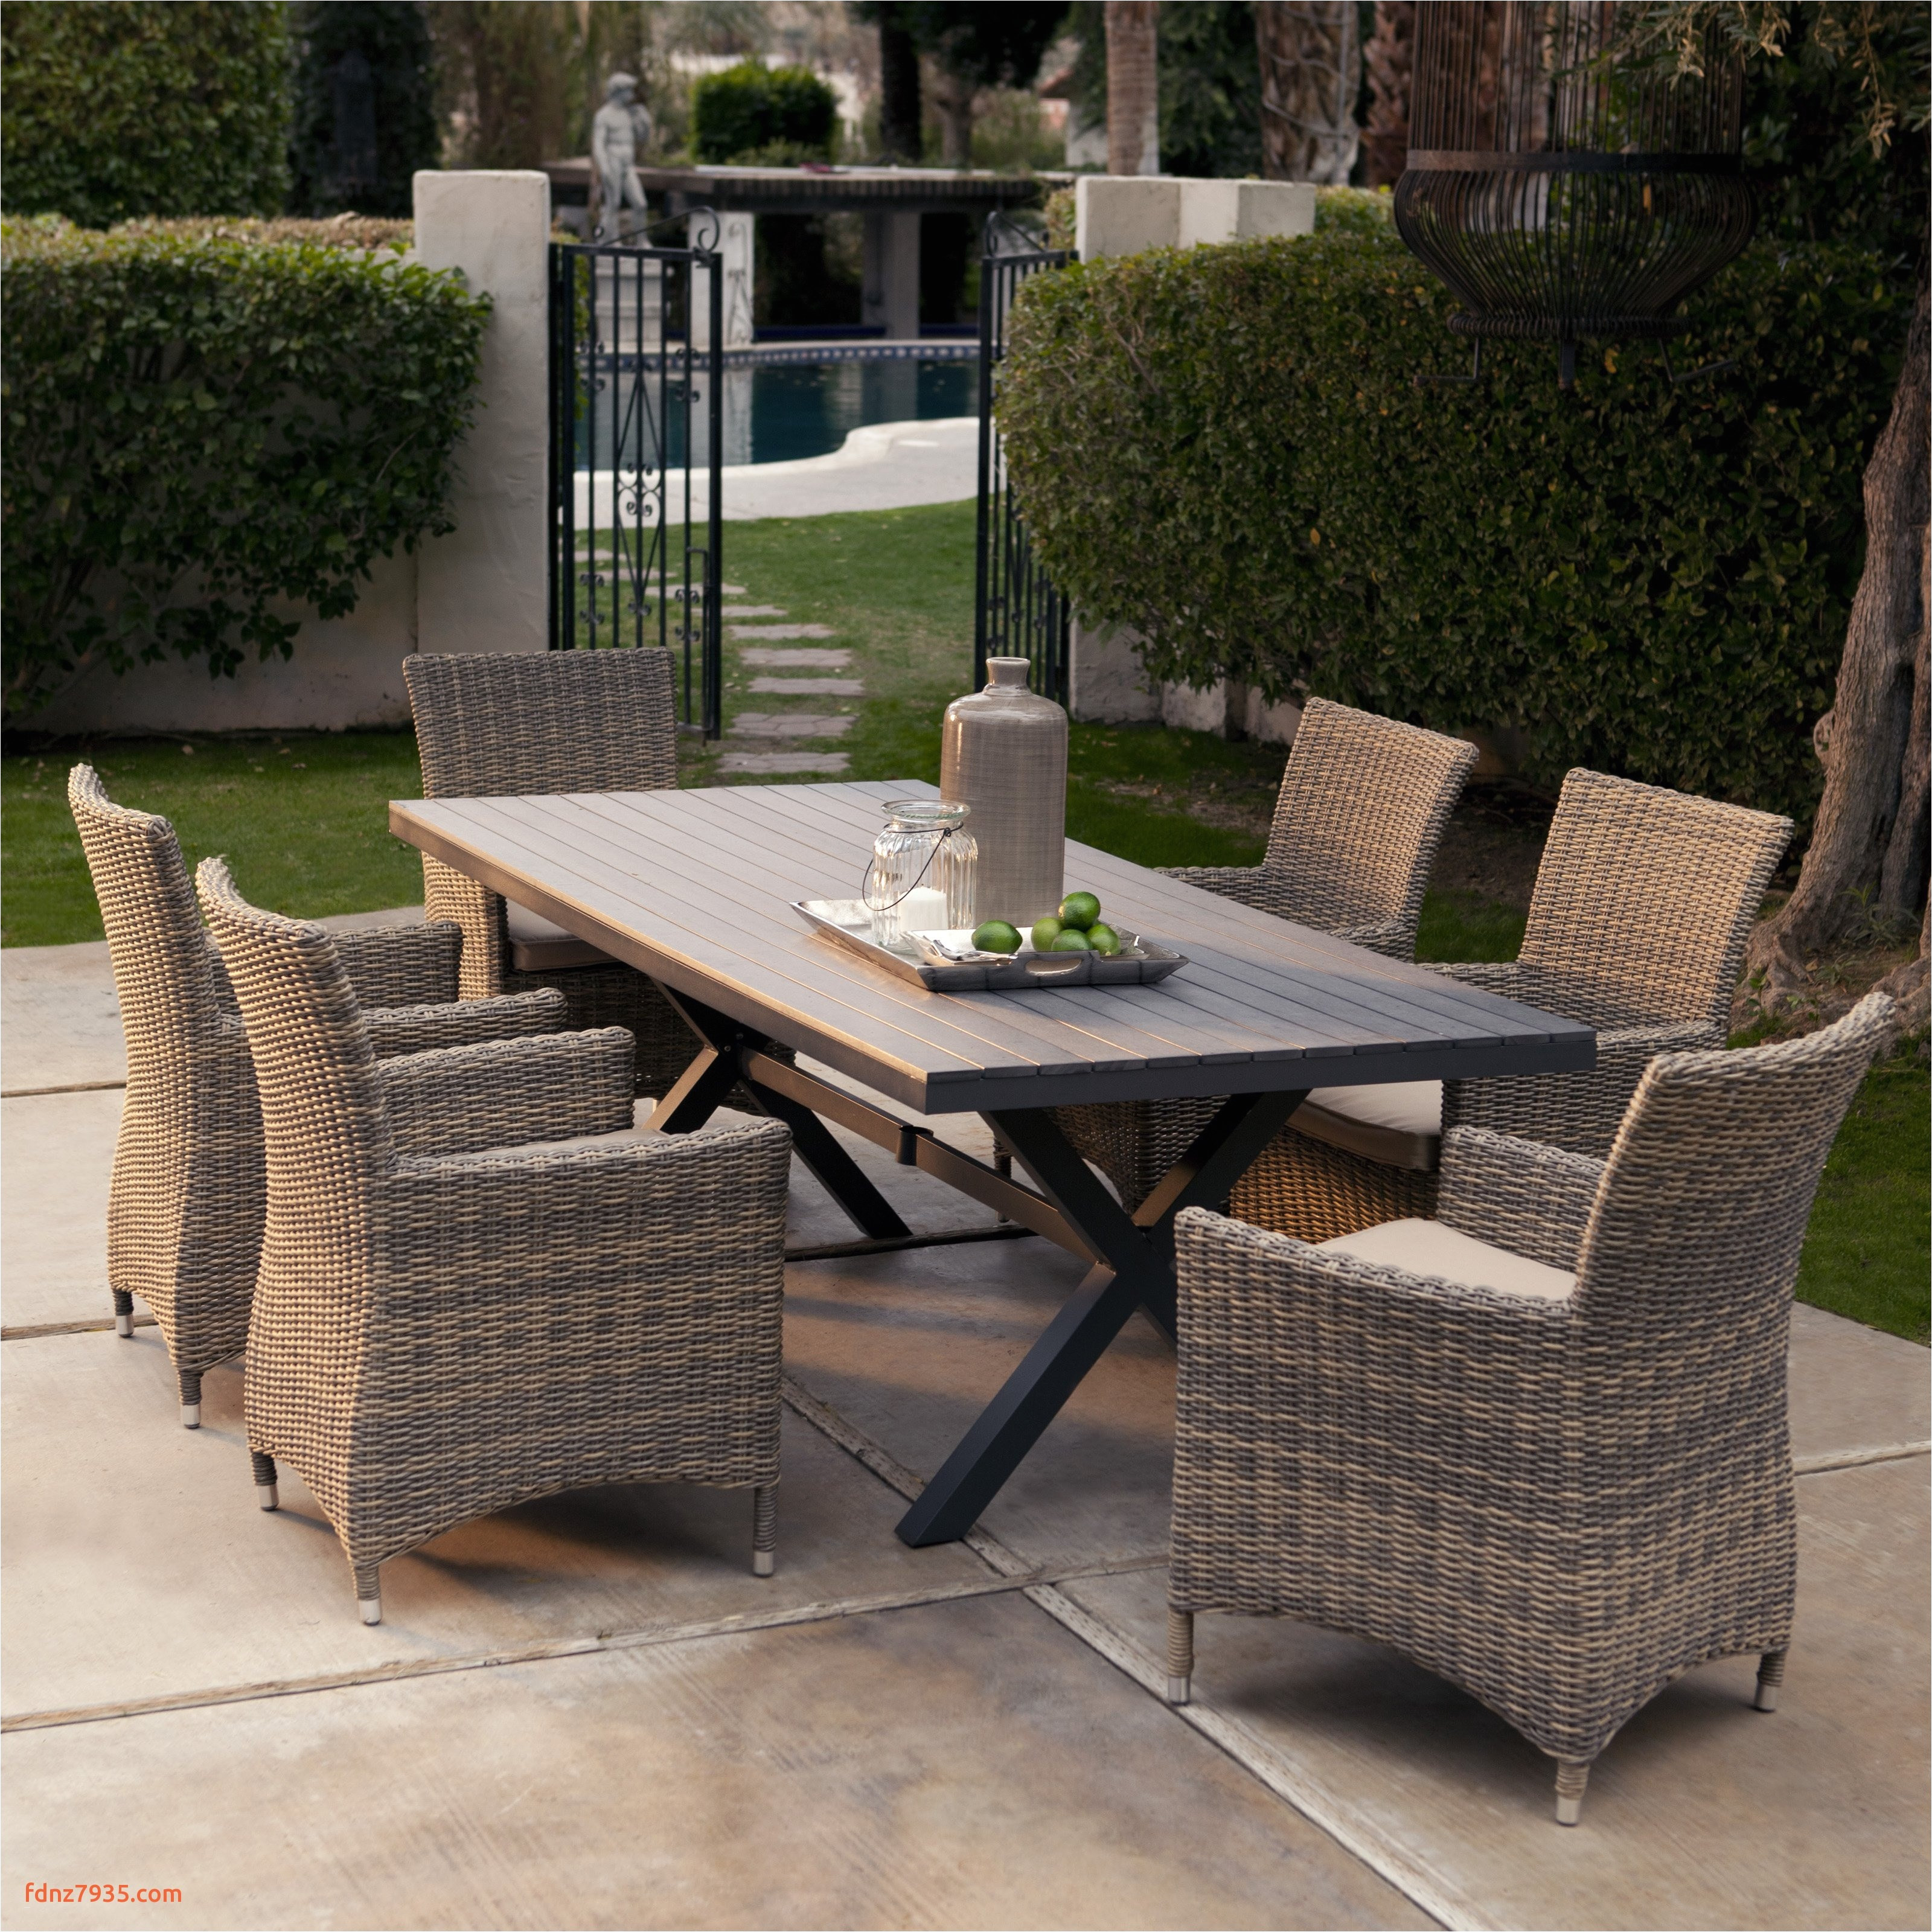 diy outdoor dining table unique chair outdoor patio furniture marvellous wicker outdoor sofa 0d